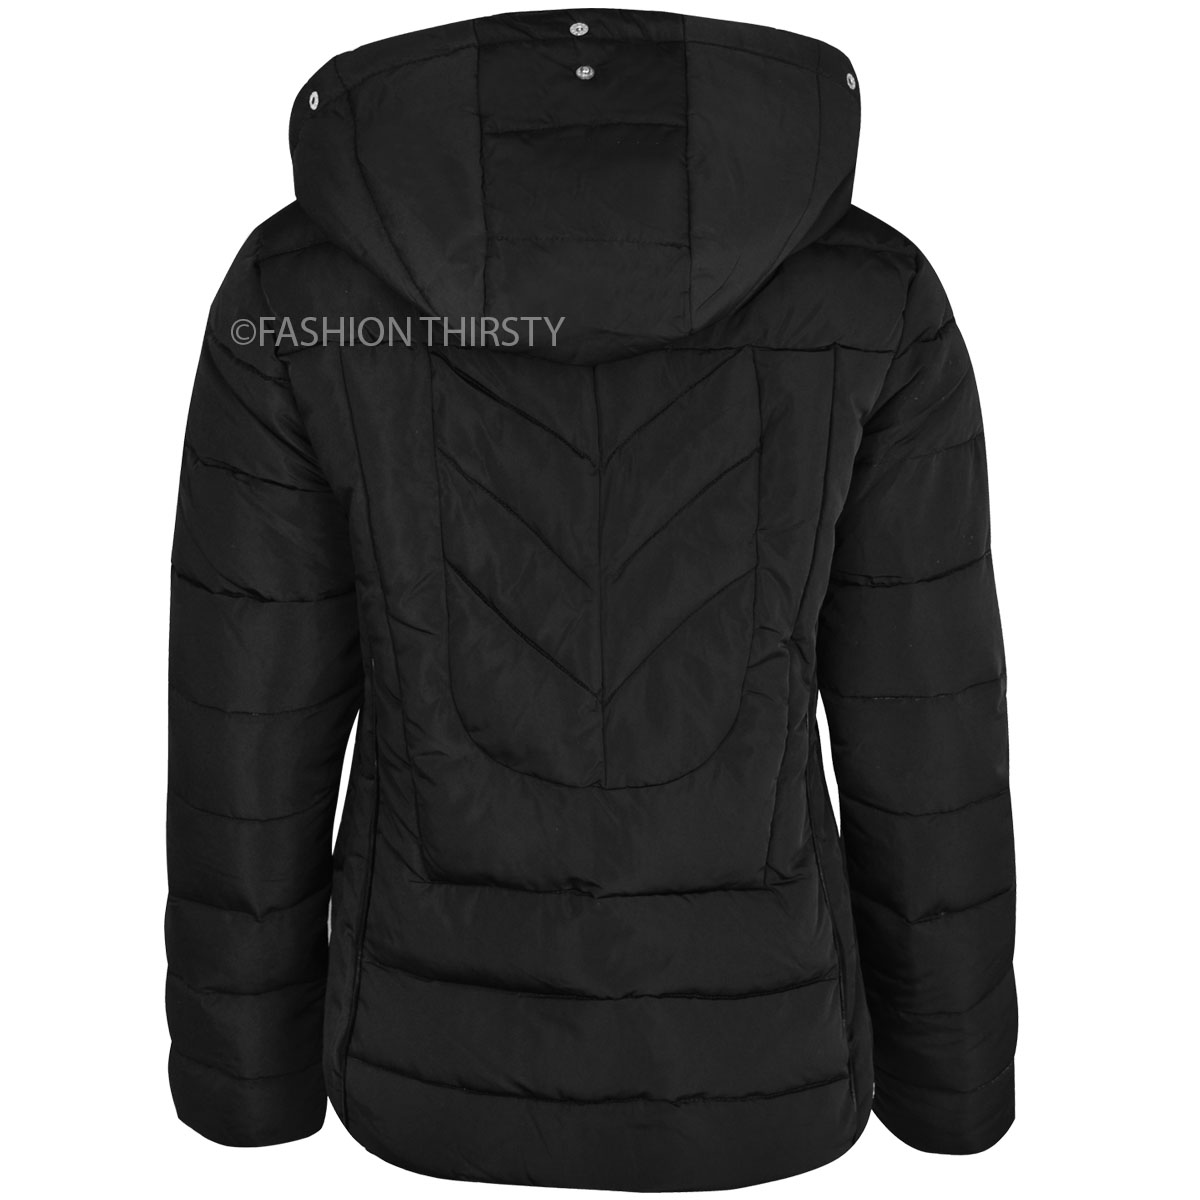 WOMENS-LADIES-QUILTED-WINTER-COAT-PUFFER-FUR-COLLAR-HOOD-JACKET-PARKA-SIZE-NEW